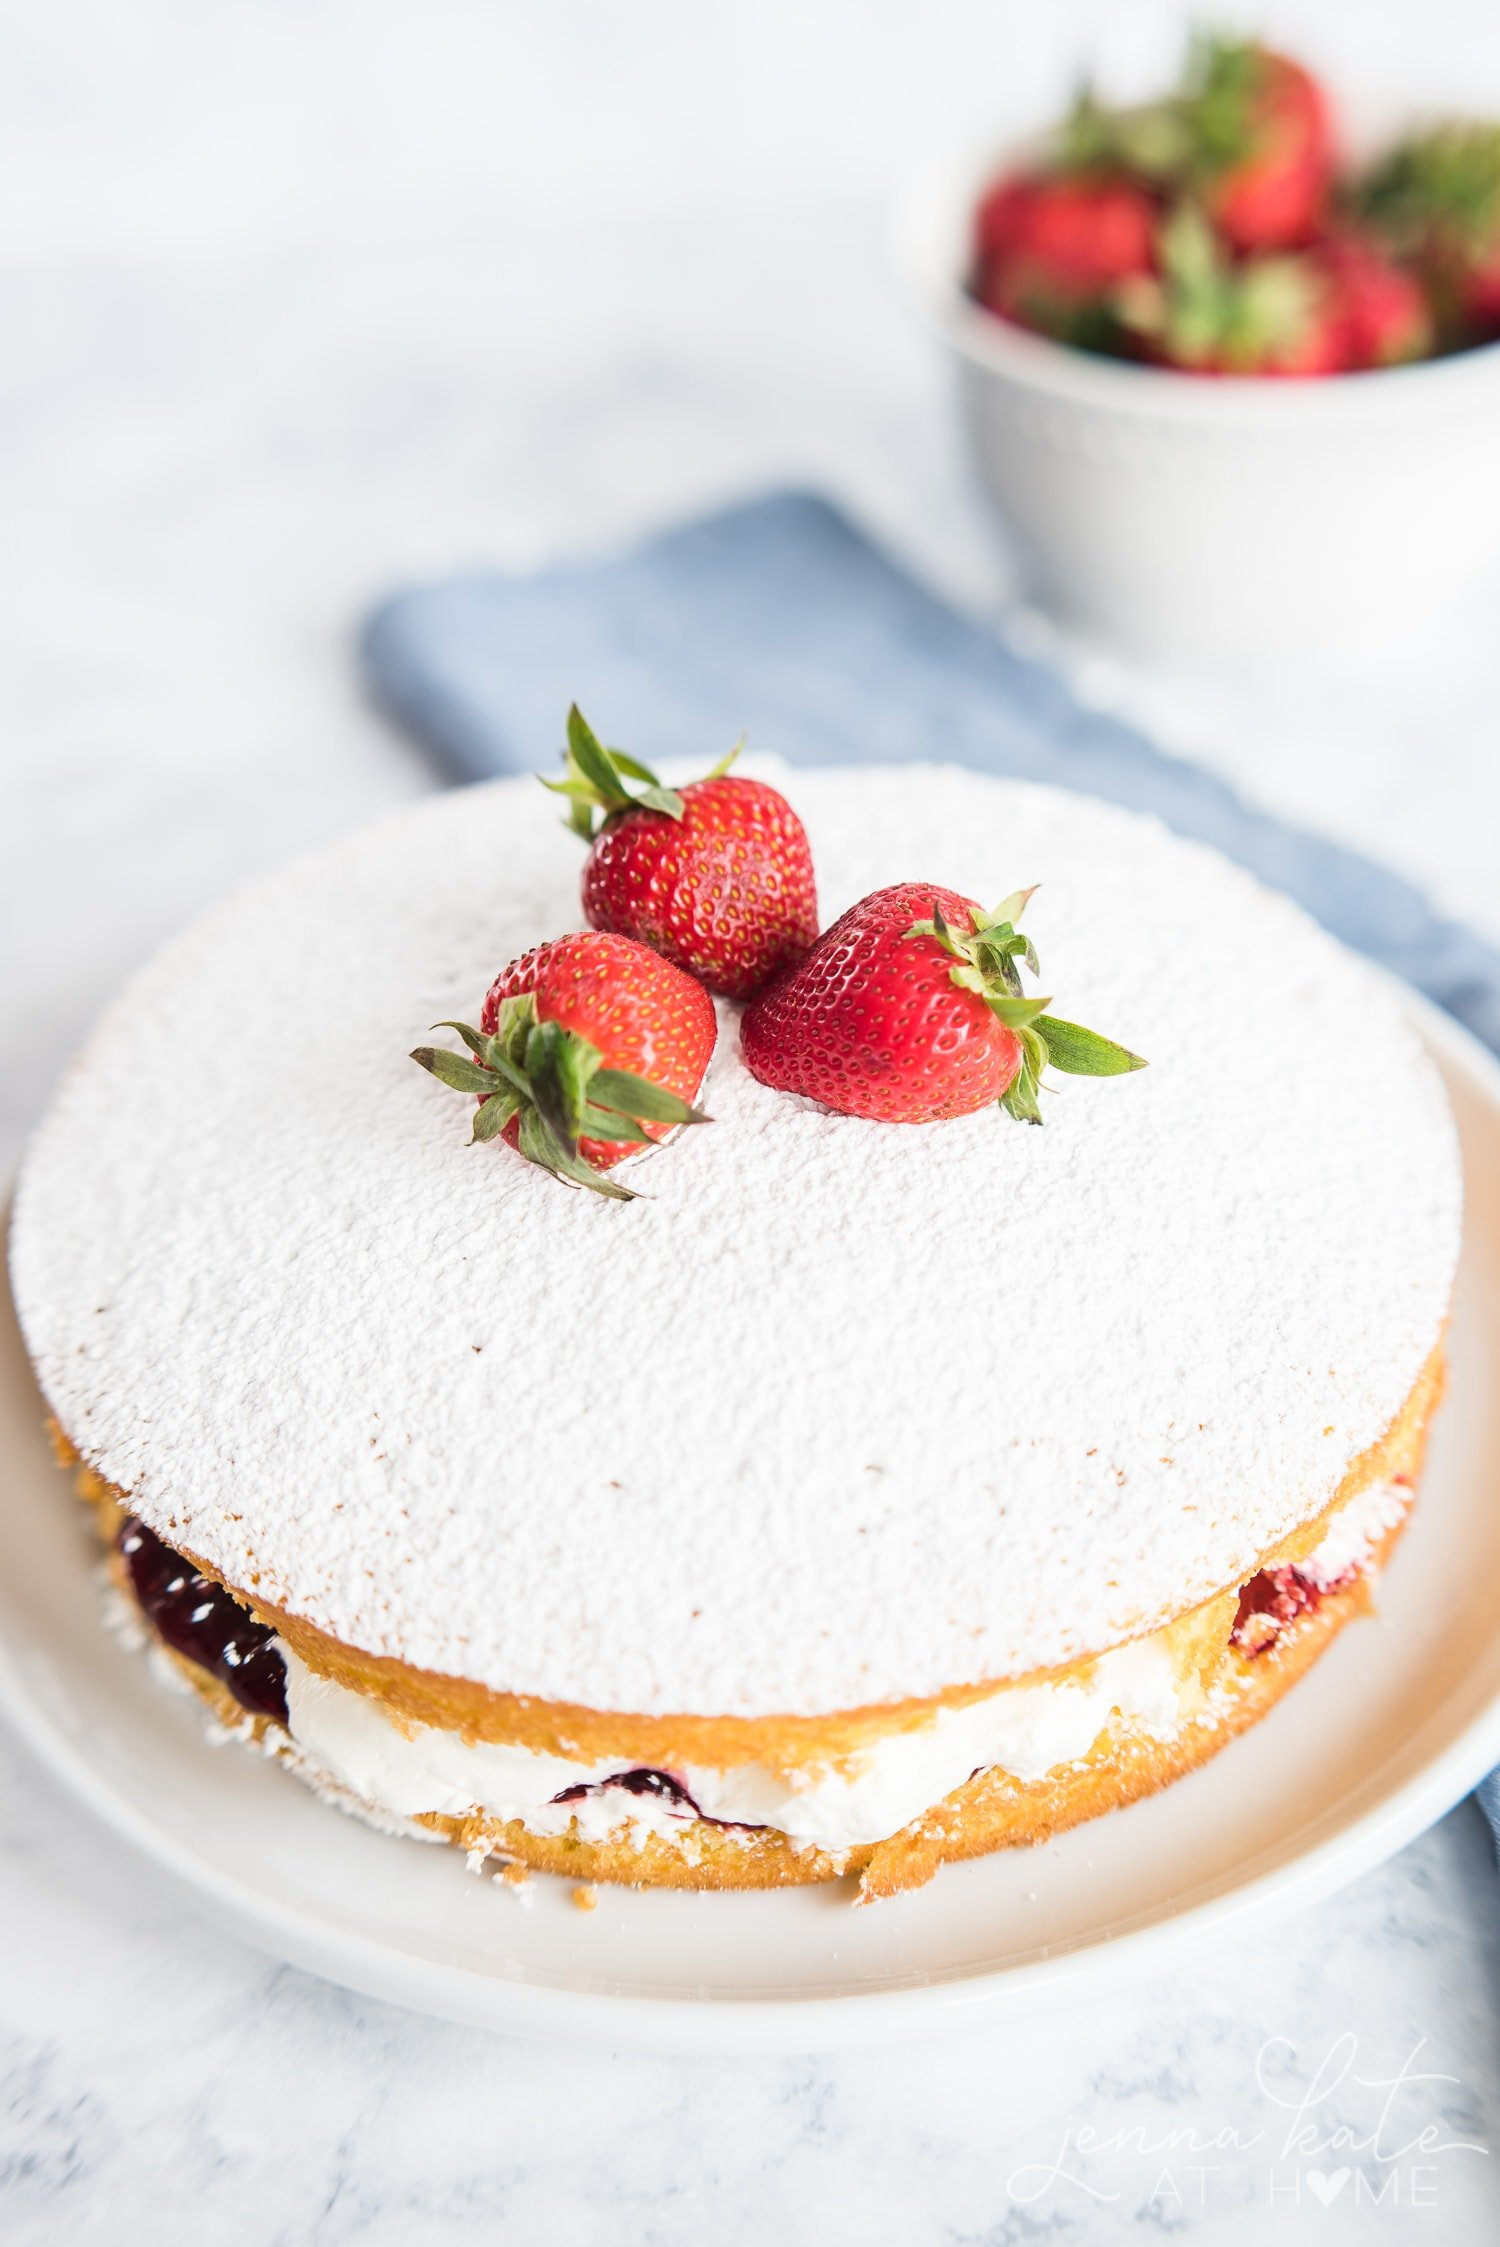 Top of victoria sponge cake, dusted with powdered sugar with 3 strawberries in the center